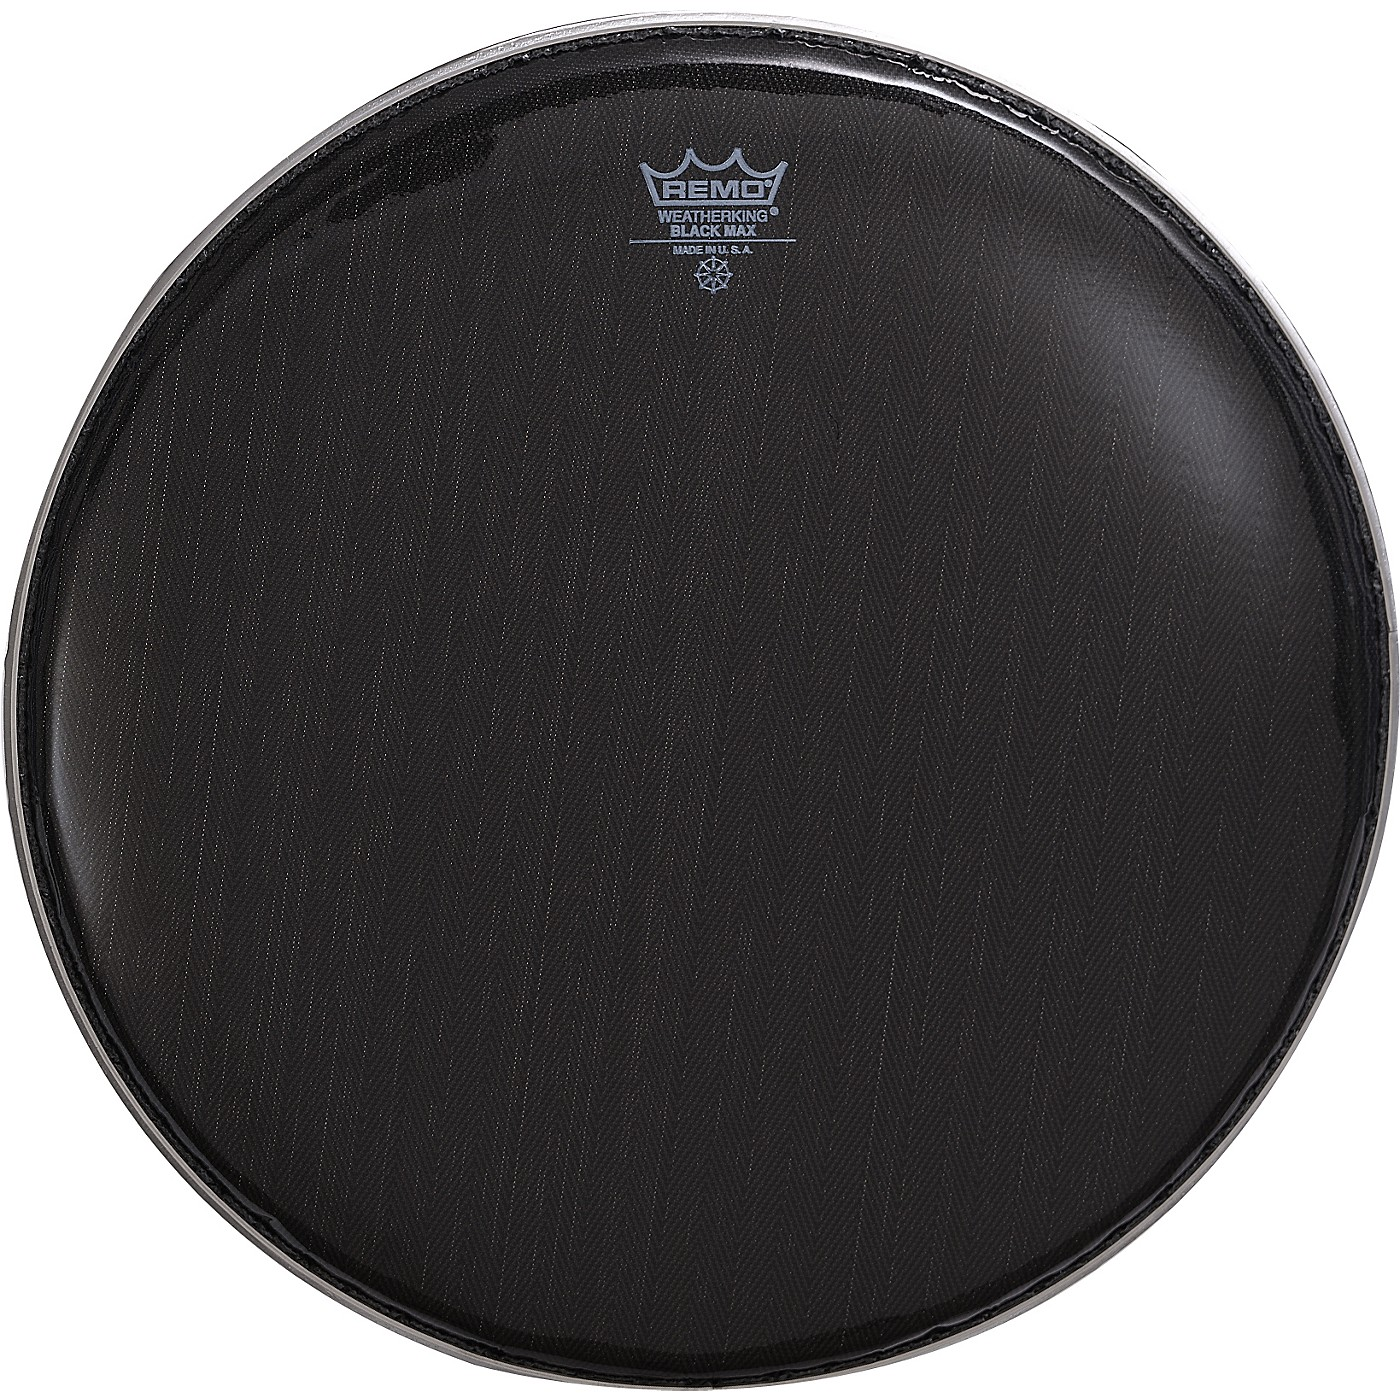 Remo Black Max Crimped Marching Snare Drum Head thumbnail